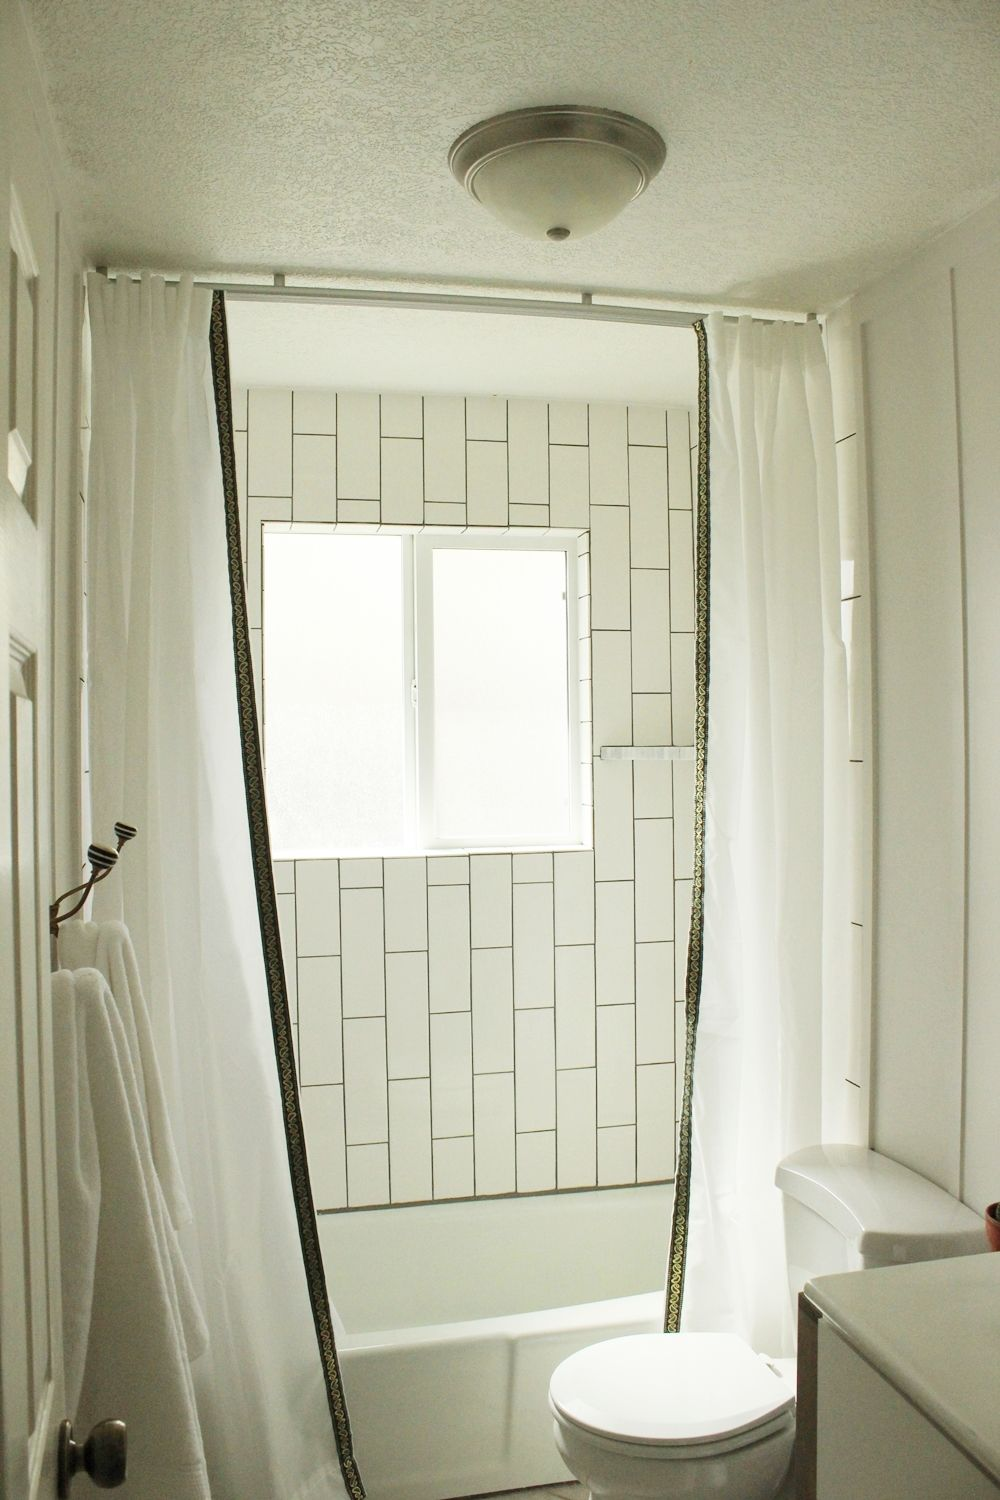 install a ceiling mounted shower curtain